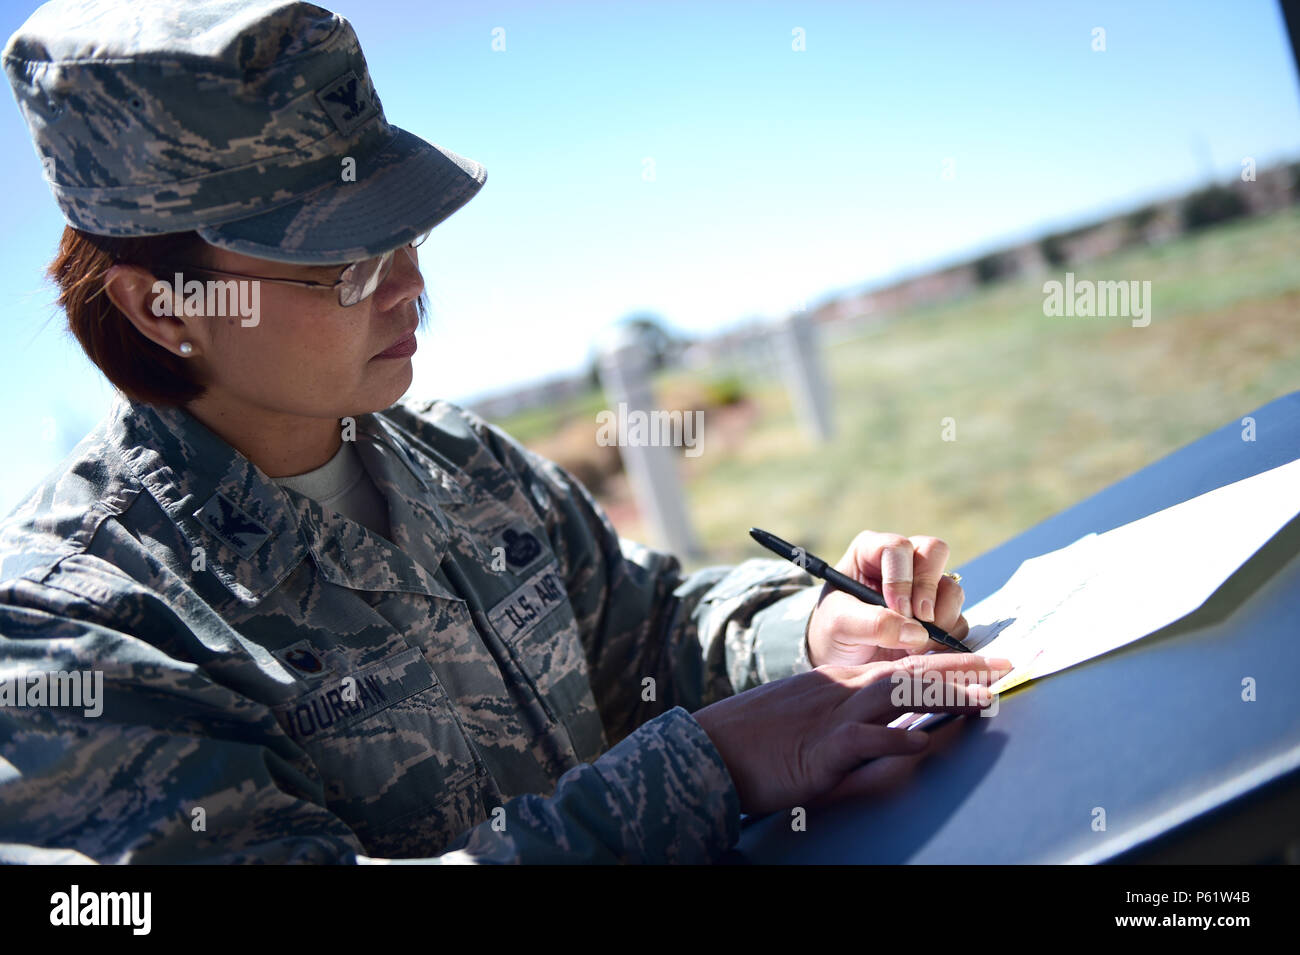 Col. Rose Jourdan, 460th Mission Support Group commander, signs an annual proclamation during an Earth and Arbor Day celebration April 21, 2016, on Buckley Air Force Base, Colo. In 1970, President Richard Nixon proclaimed the last Friday in April as National Arbor Day. (U.S. Air Force photo by Senior Airman Racheal E. Watson/Released) - Stock Image